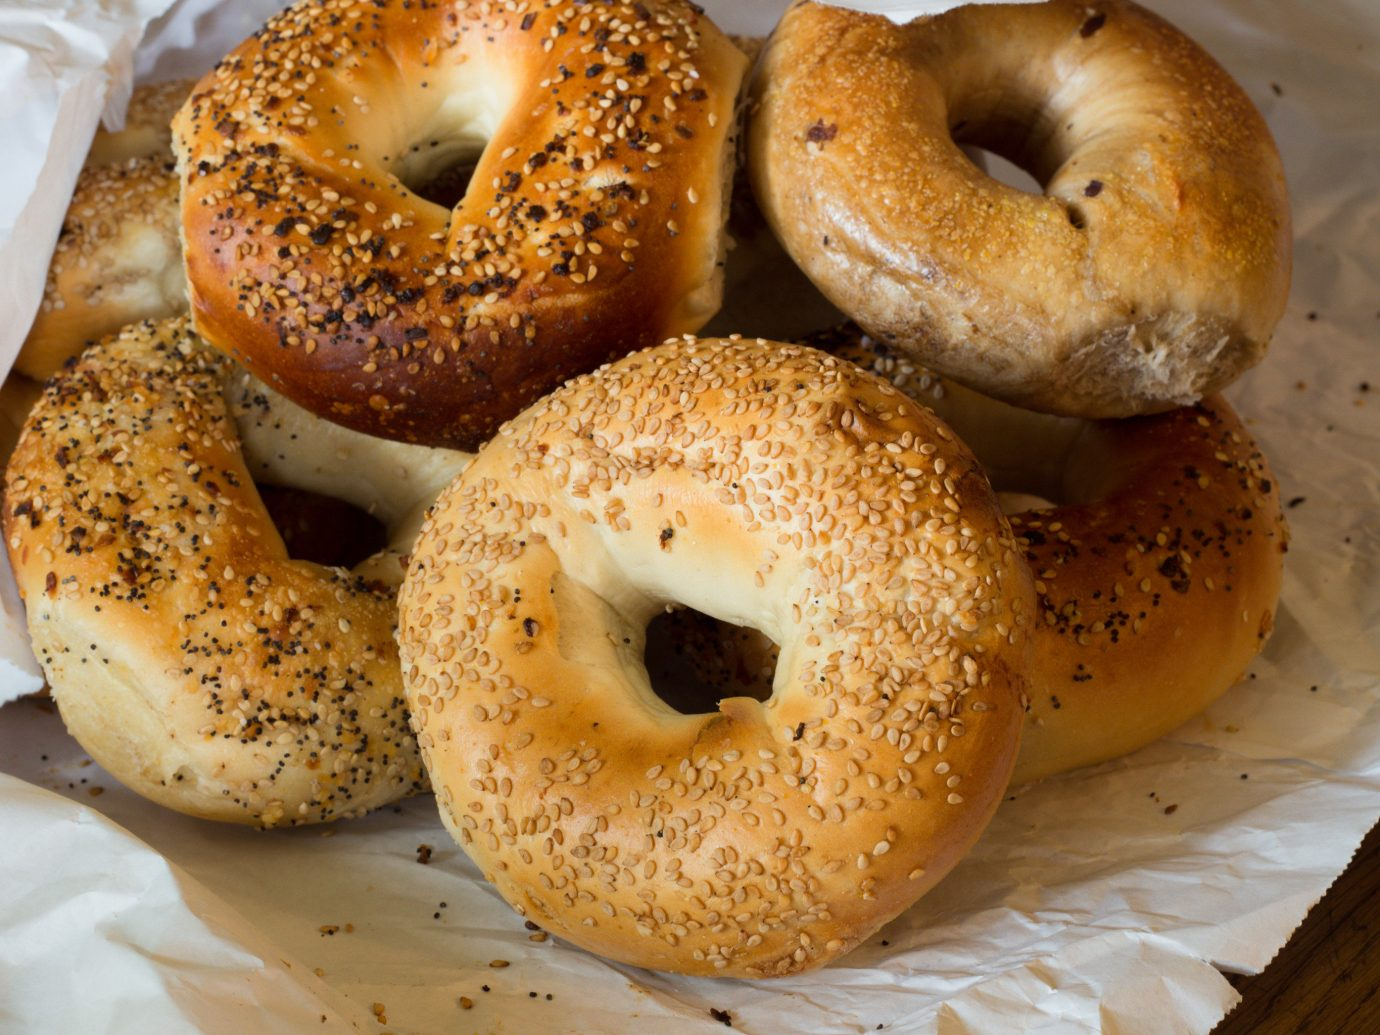 Hotels Jetsetter Guides Travel Tips Trip Ideas doughnut donut baked goods bagel food bread bialy baking whole grain bun poppy seed simit bread roll boyoz different lined variety